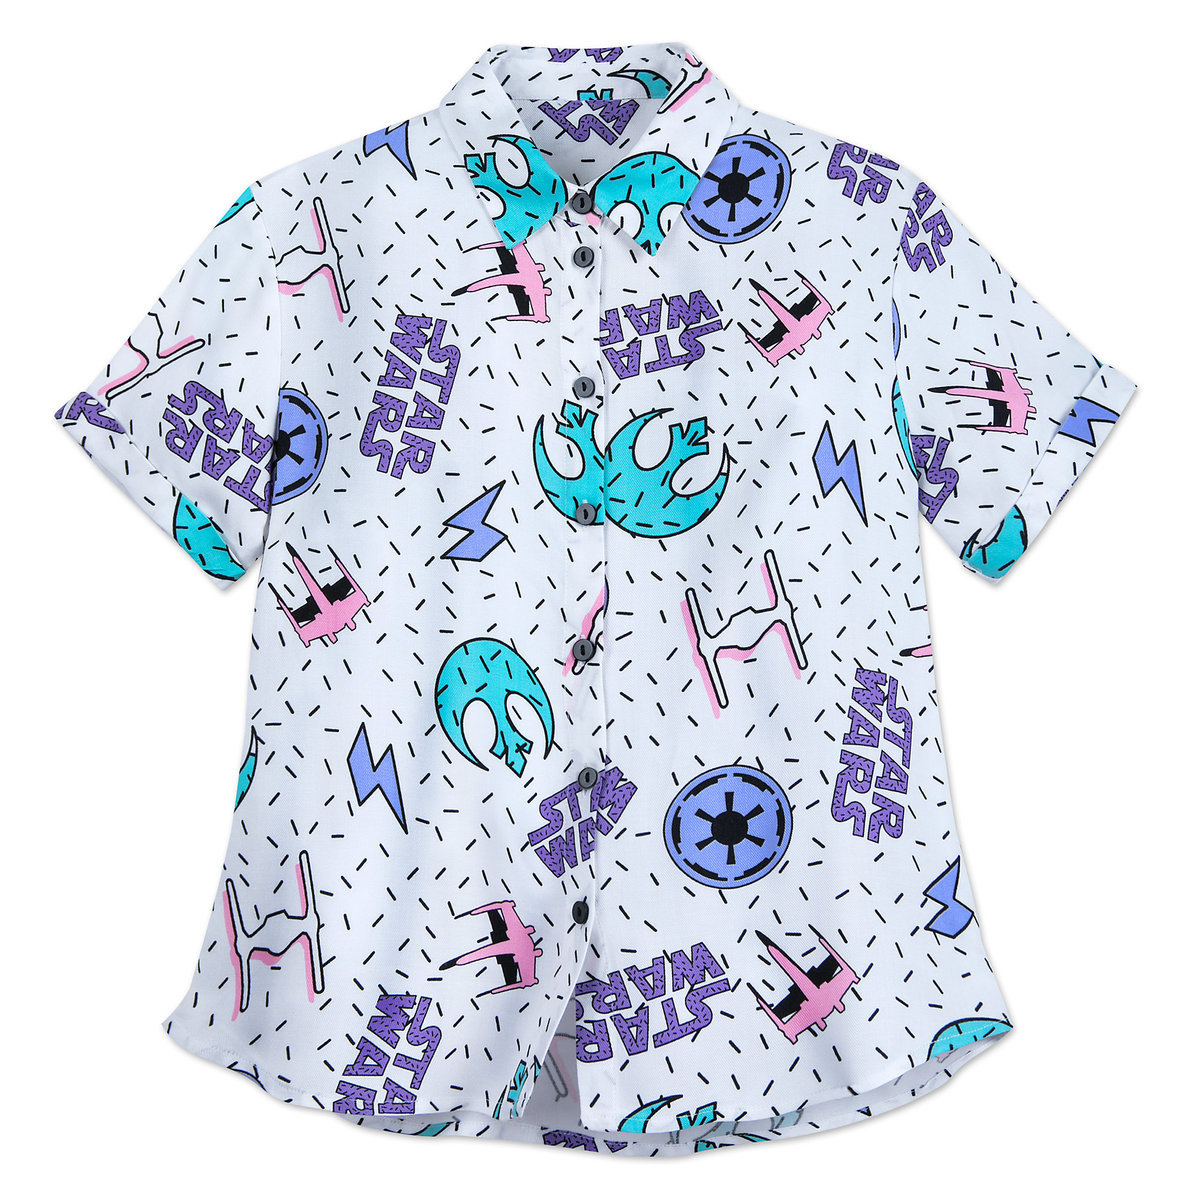 e8cc58331 Product Image of Star Wars Button Shirt for Women # 1